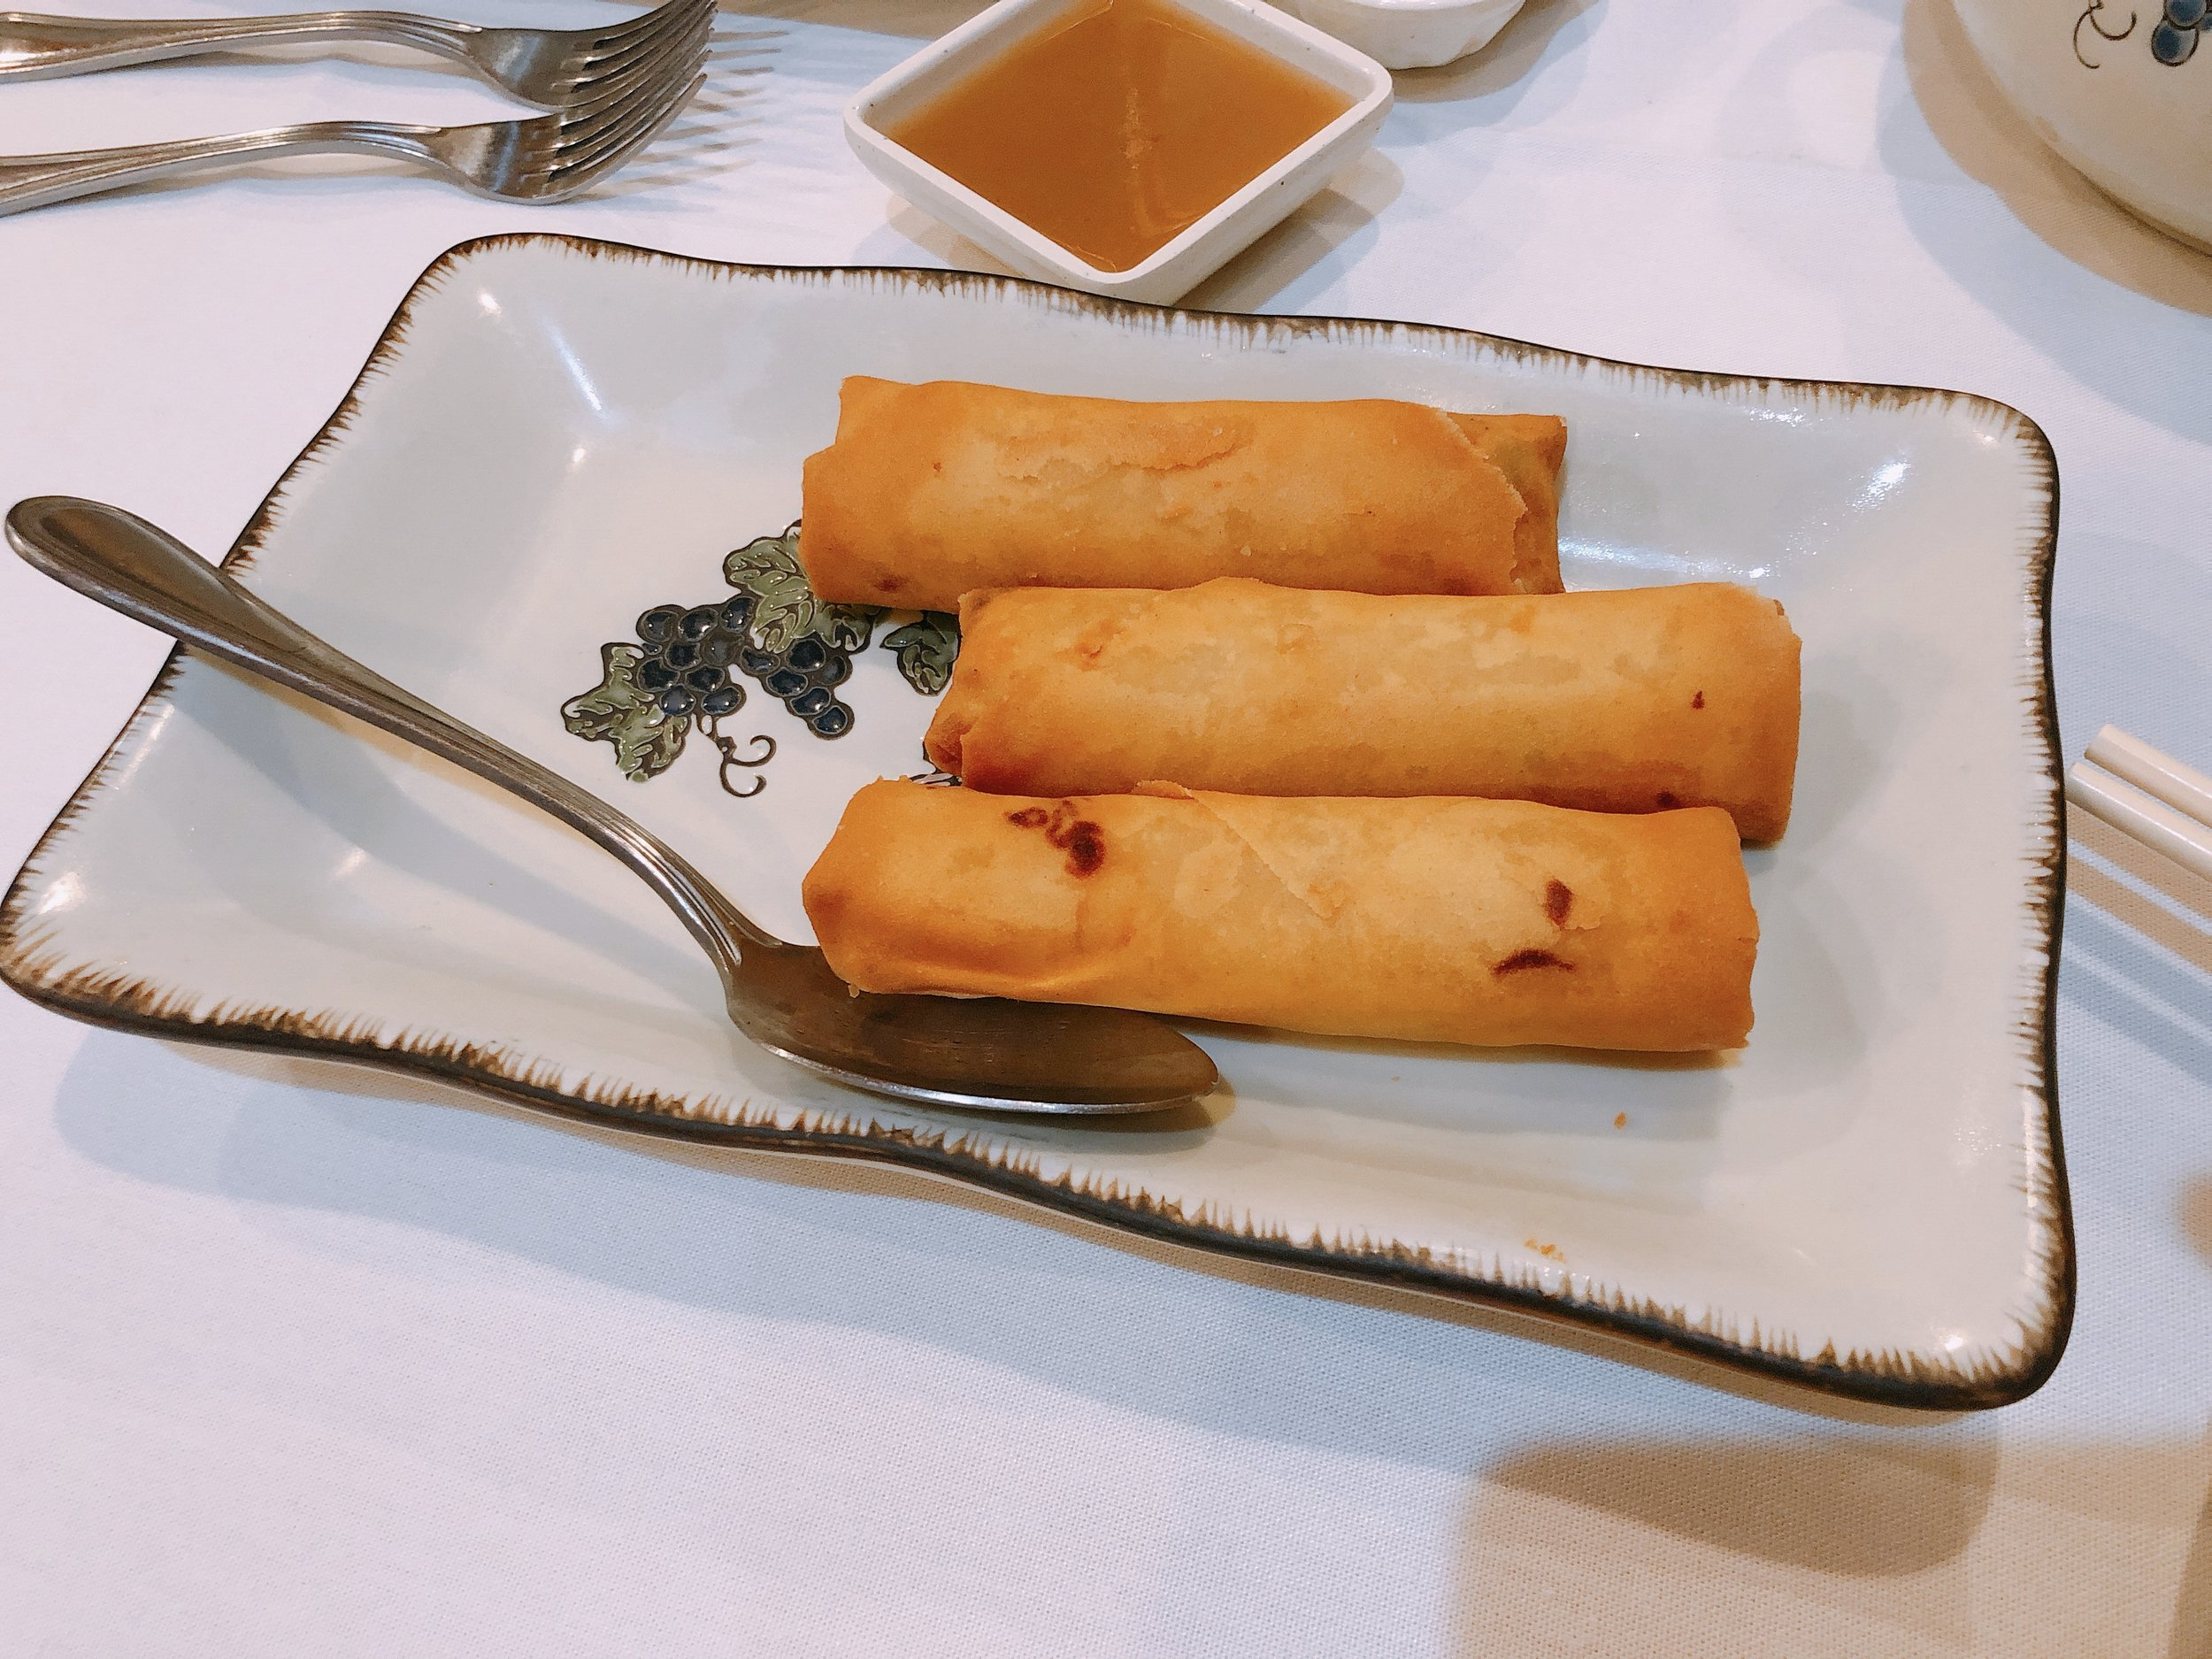 Spring rolls, one of my favorite American Chinese dishes!